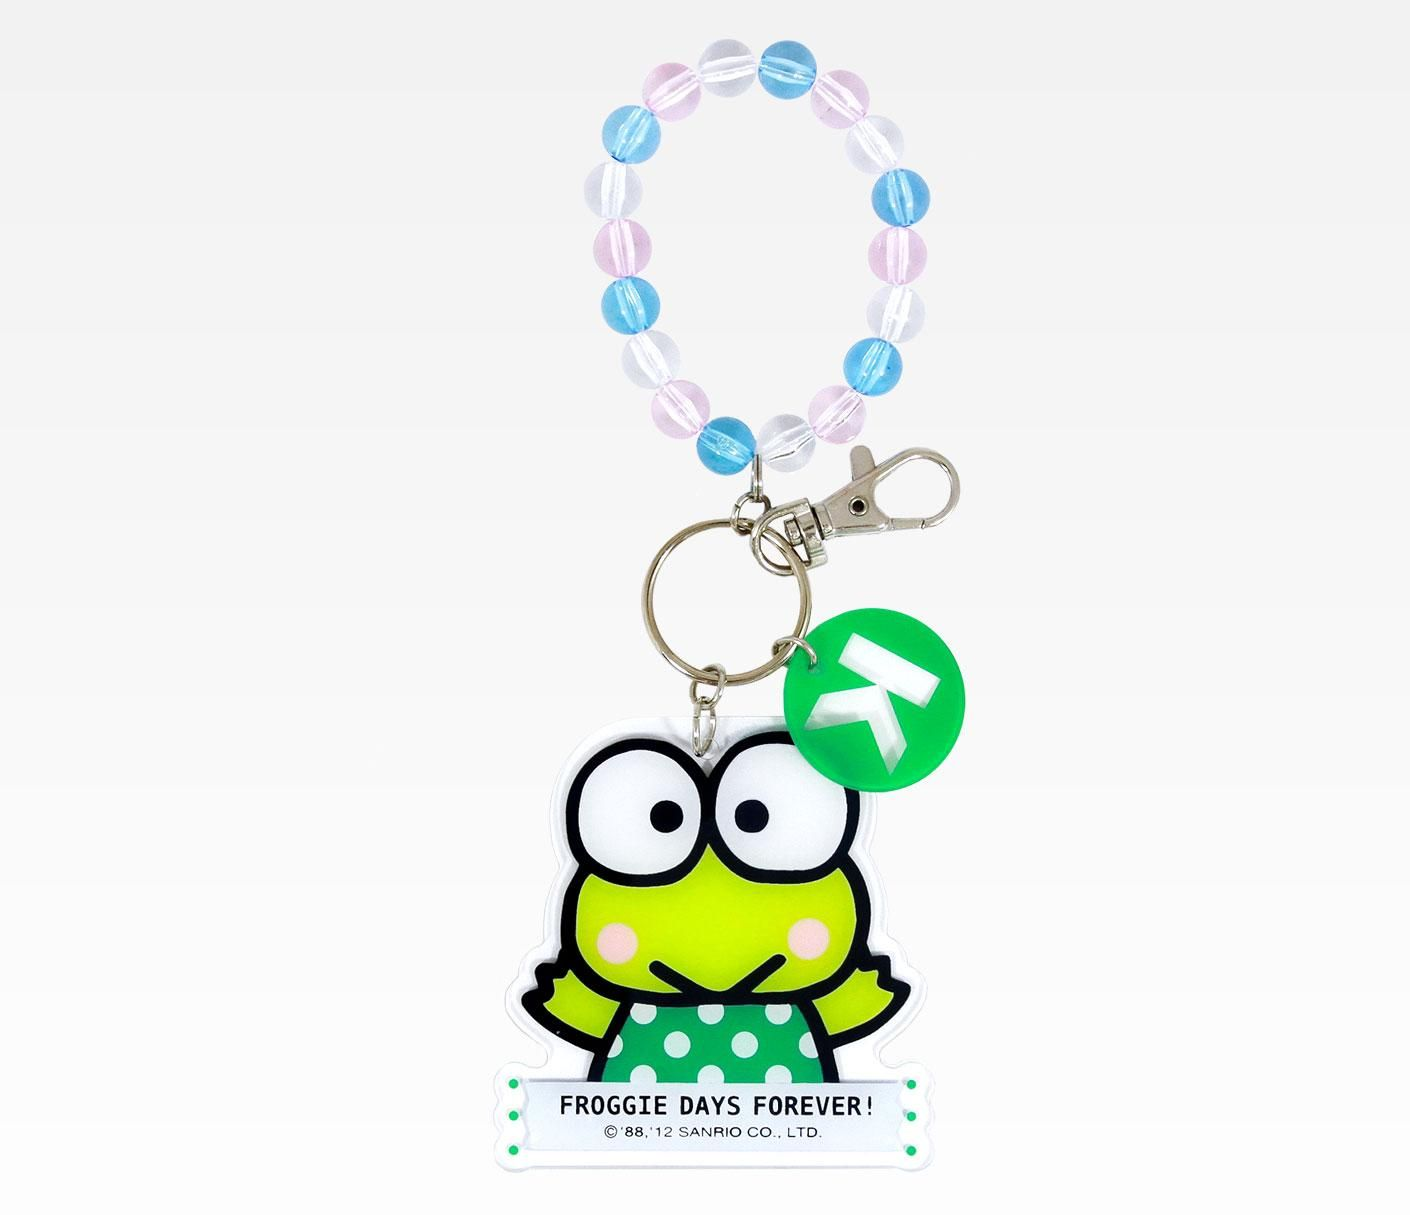 Keroppi Key Holder Dot In Characters Keroppi At Sanrio